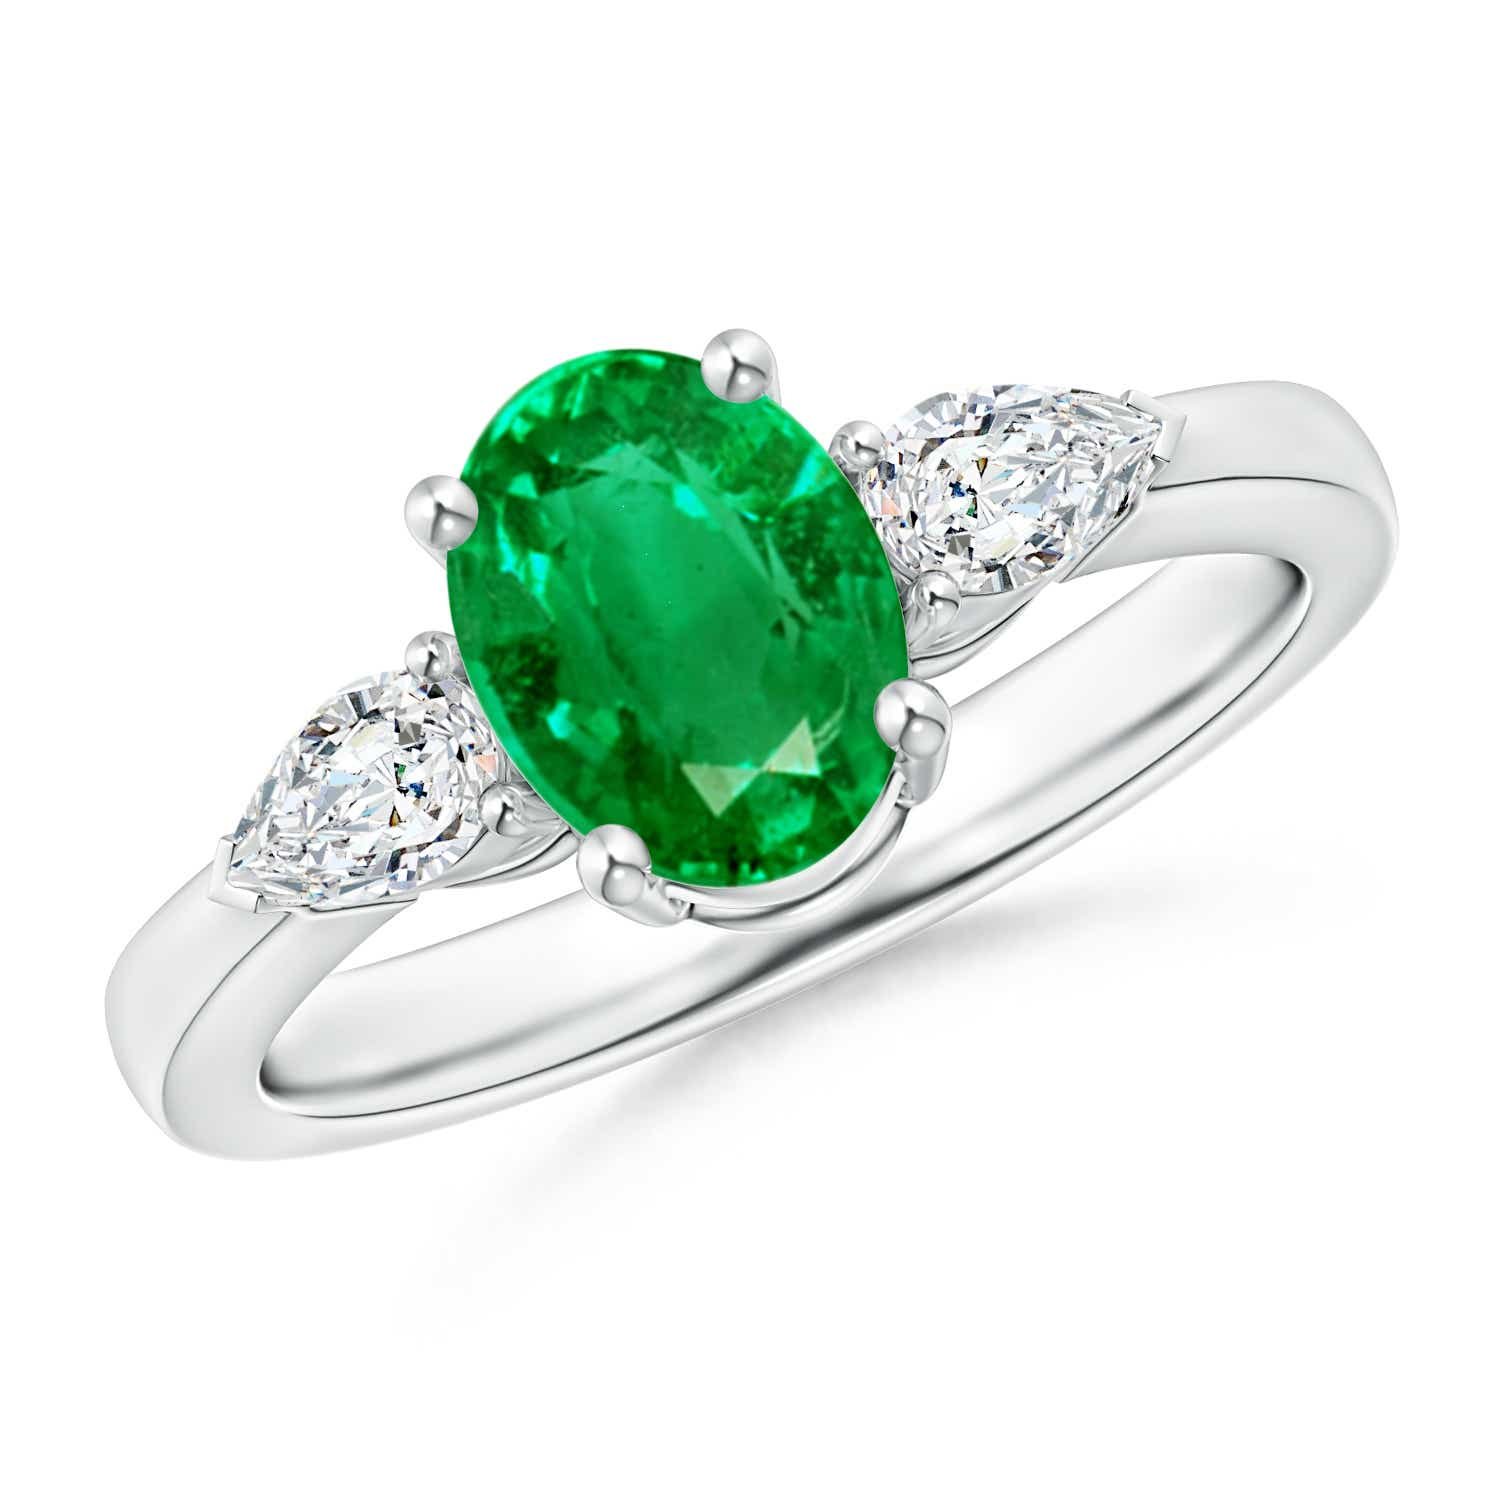 Angara Three Stone Diamond Ring with Green Emerald Stide Stone in Rose Gold sWfuLrA0I1